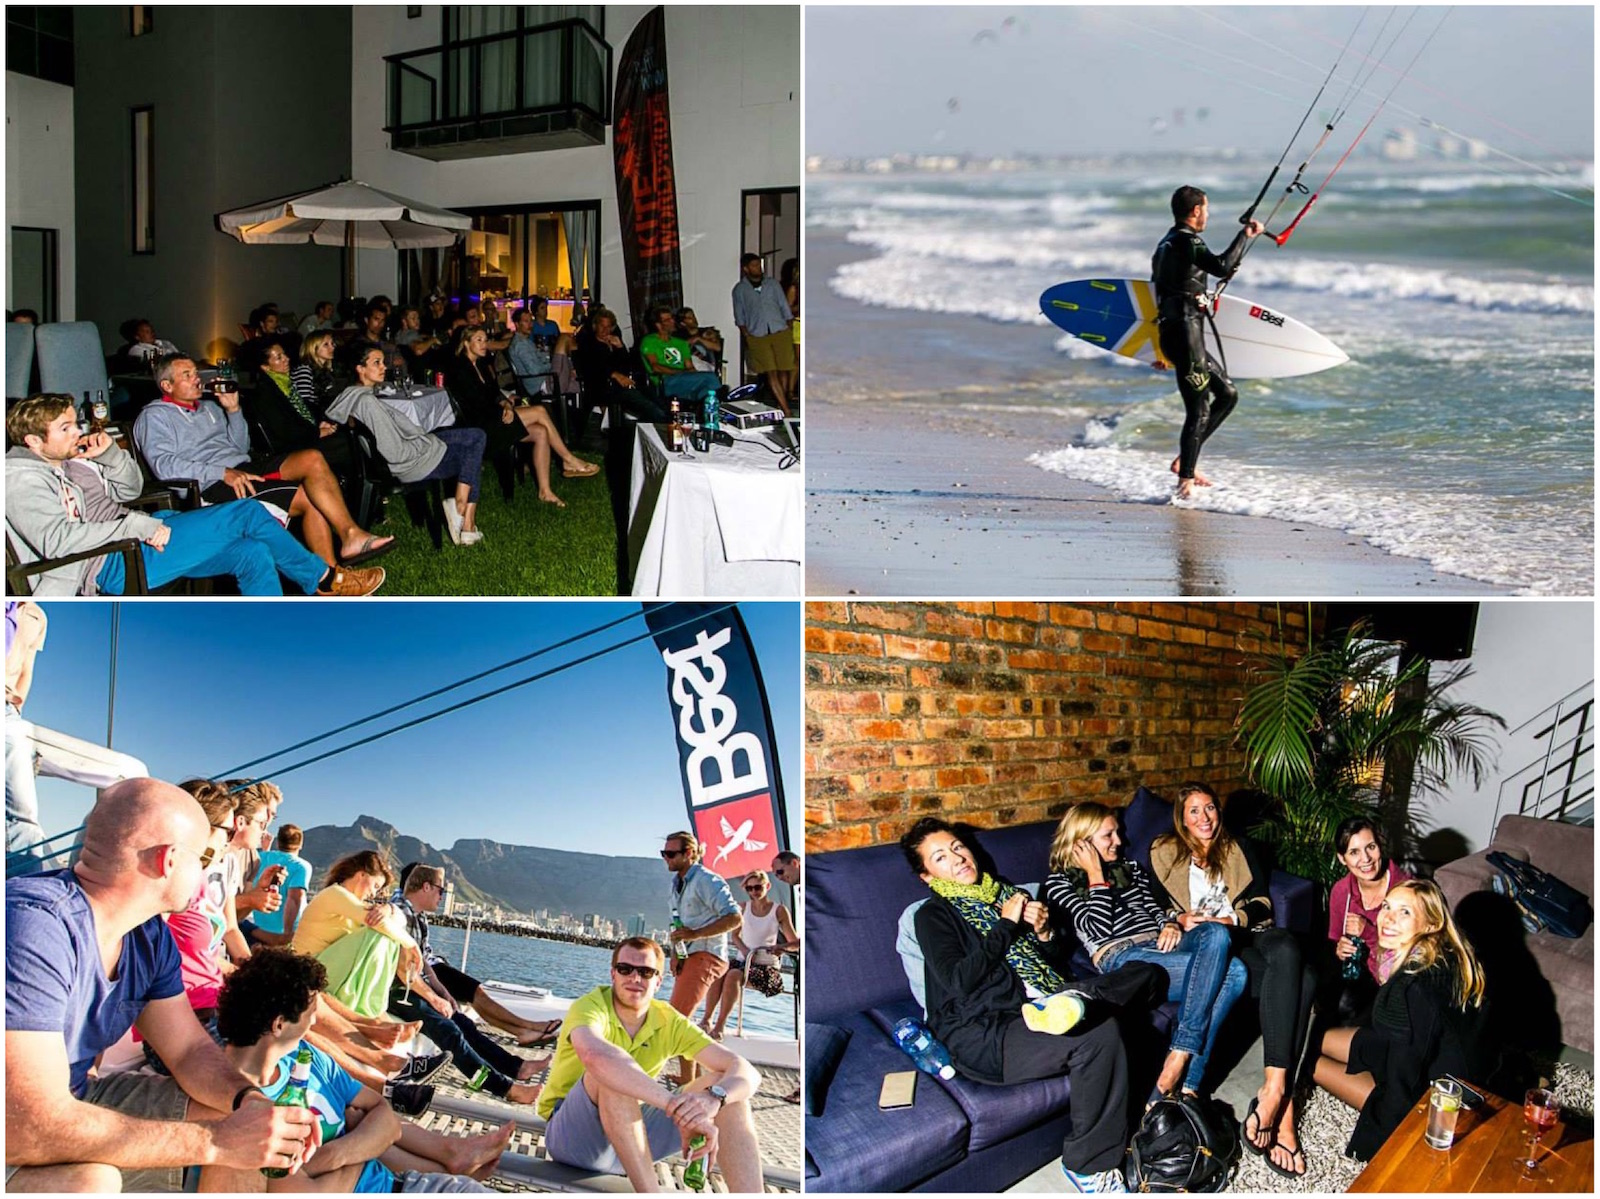 Networking events like the Founders Kite Club are a great way to generate new business opportunities in a fun and relaxed environment.